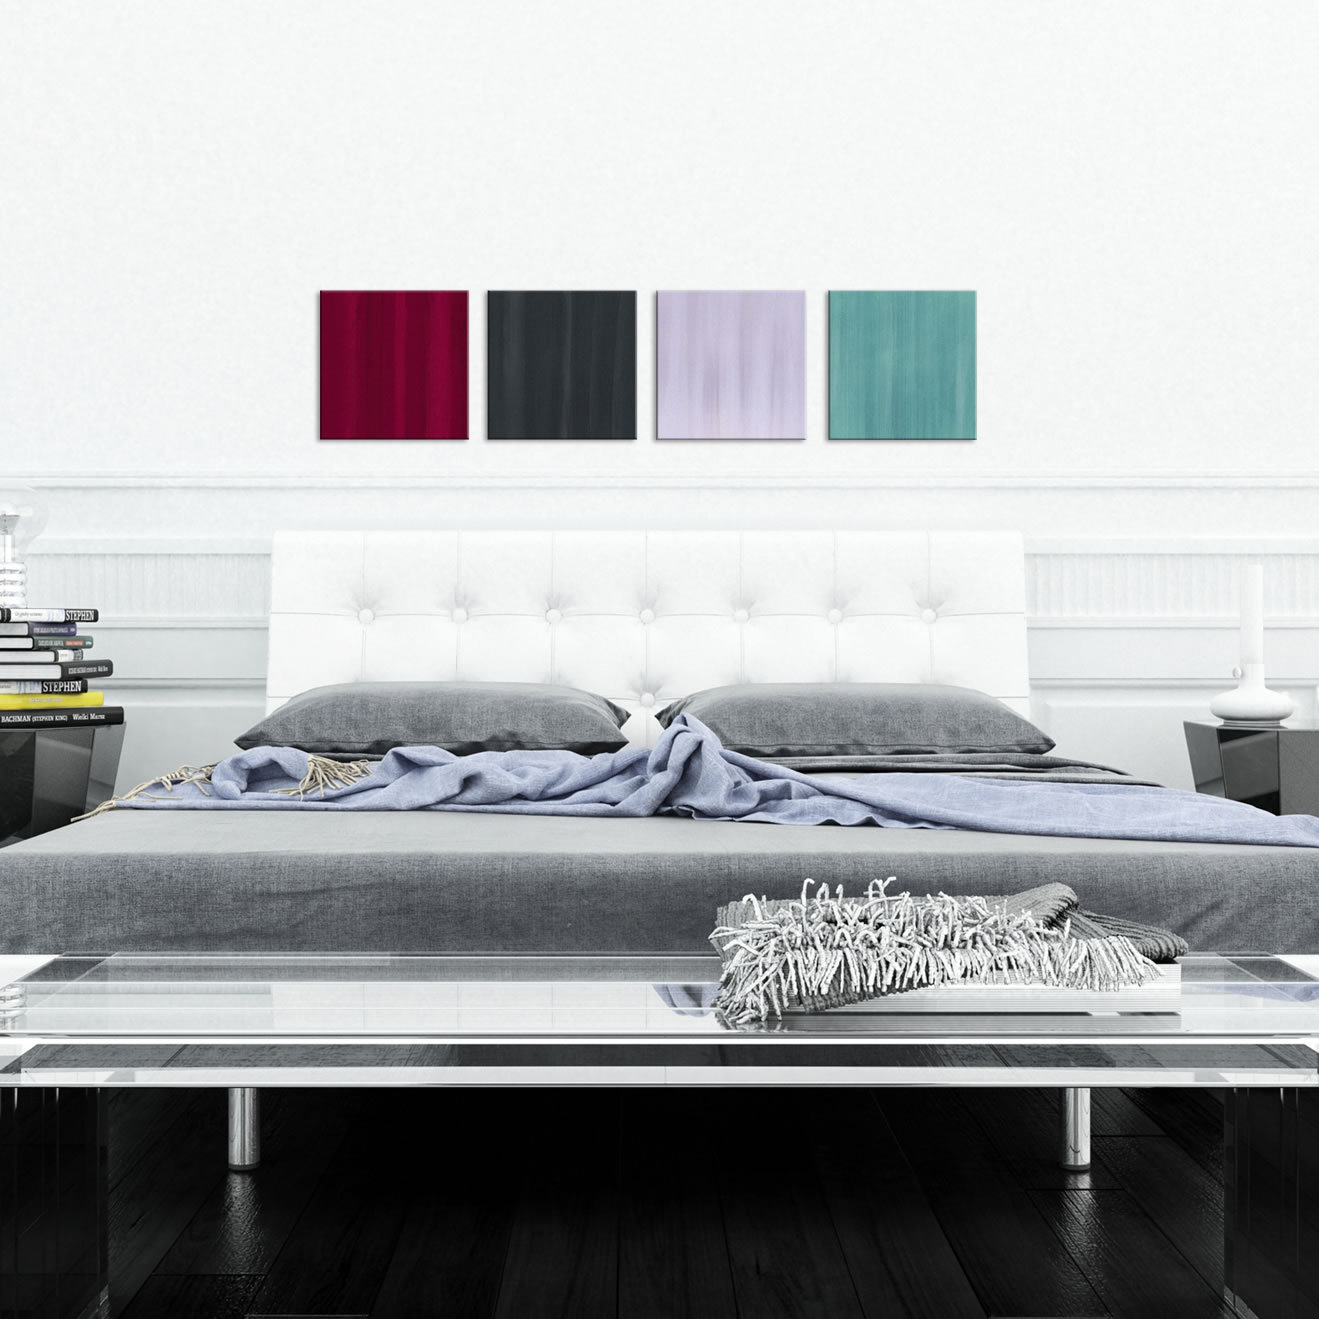 Velvet - Colorful Contemporary Accents by Celeste Reiter